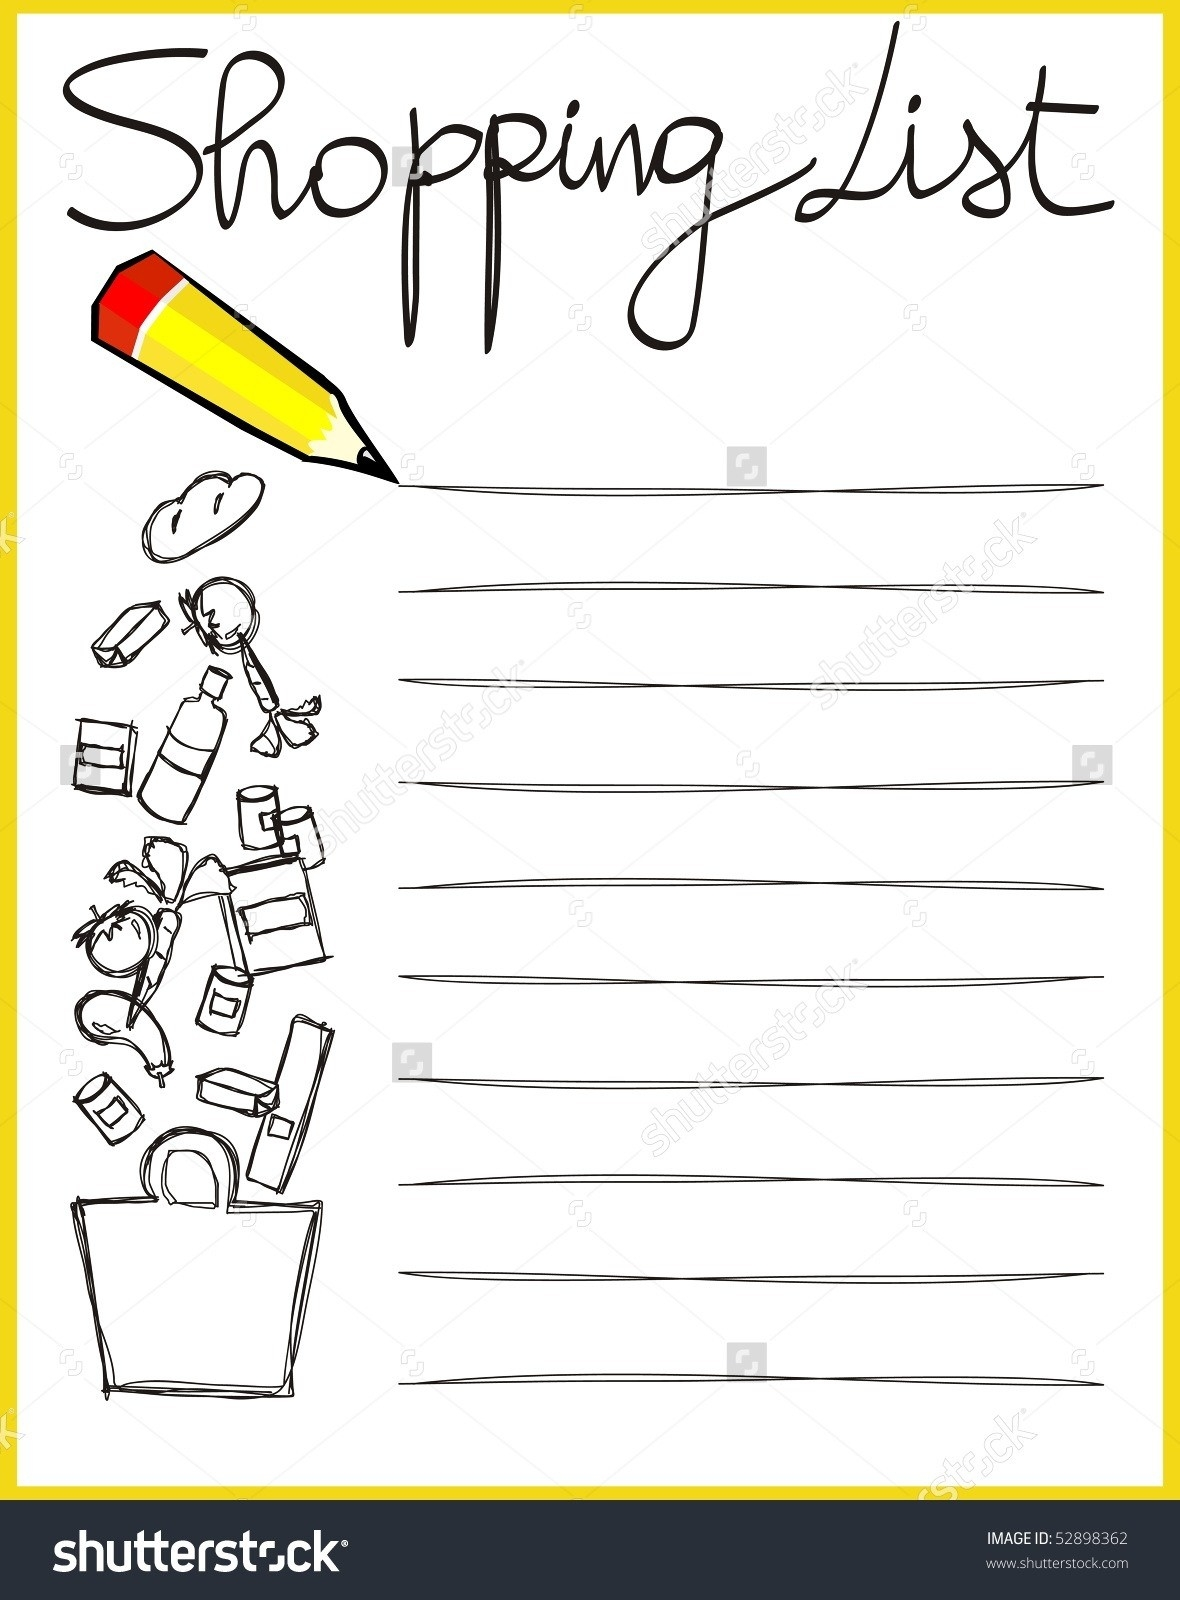 Shopping List Clipart Black And White | World Of Example in Shopping List Clipart Black And White 21671